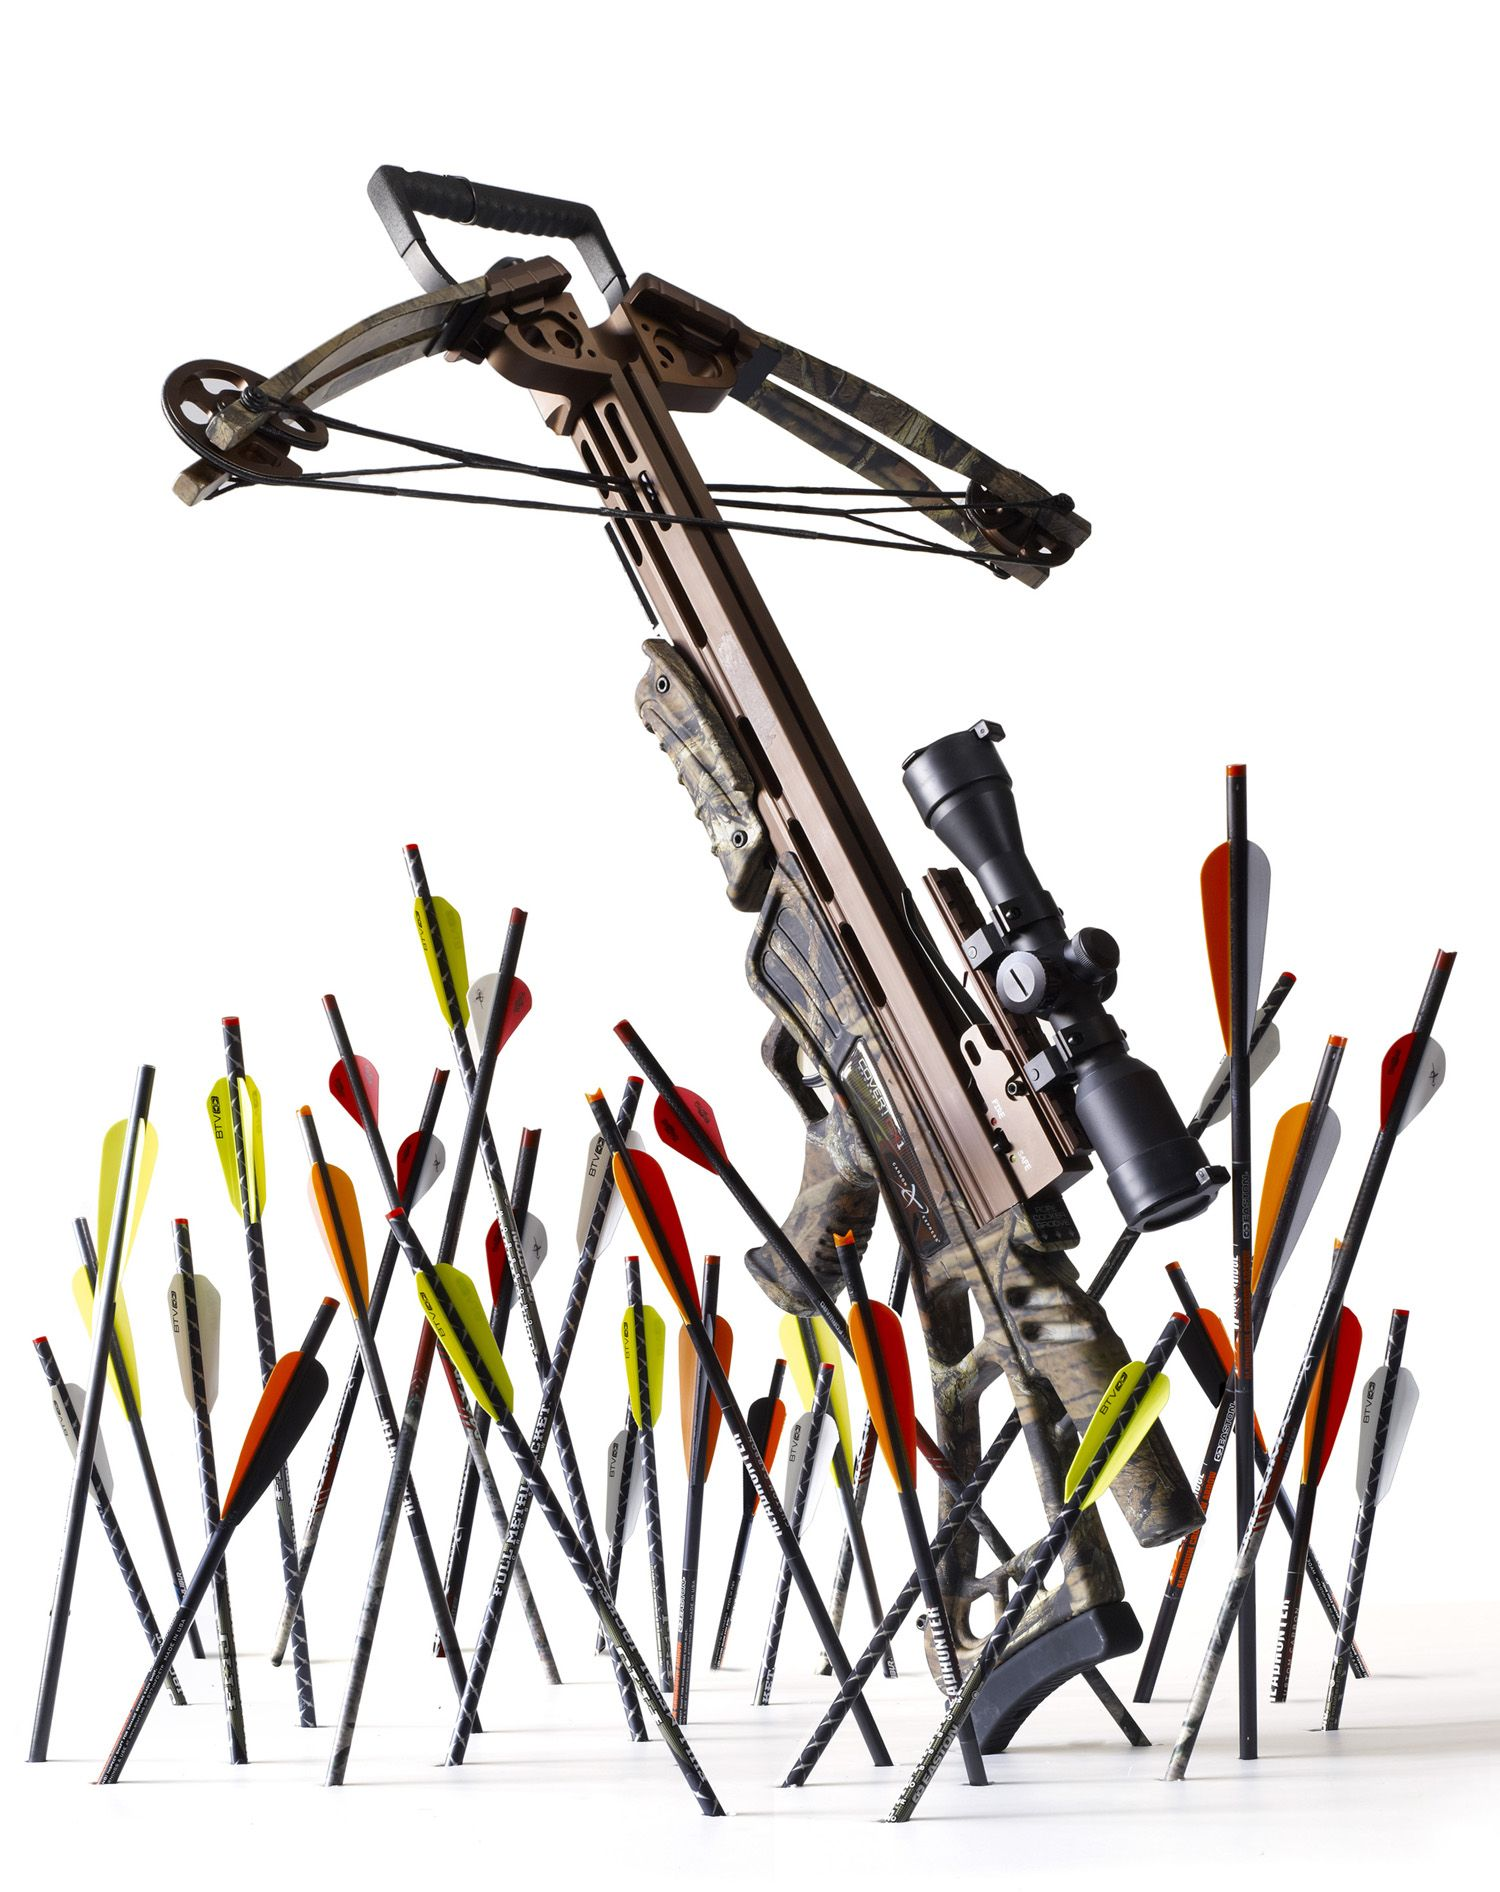 Four Great (And Inexpensive) EntryLevel Crossbows